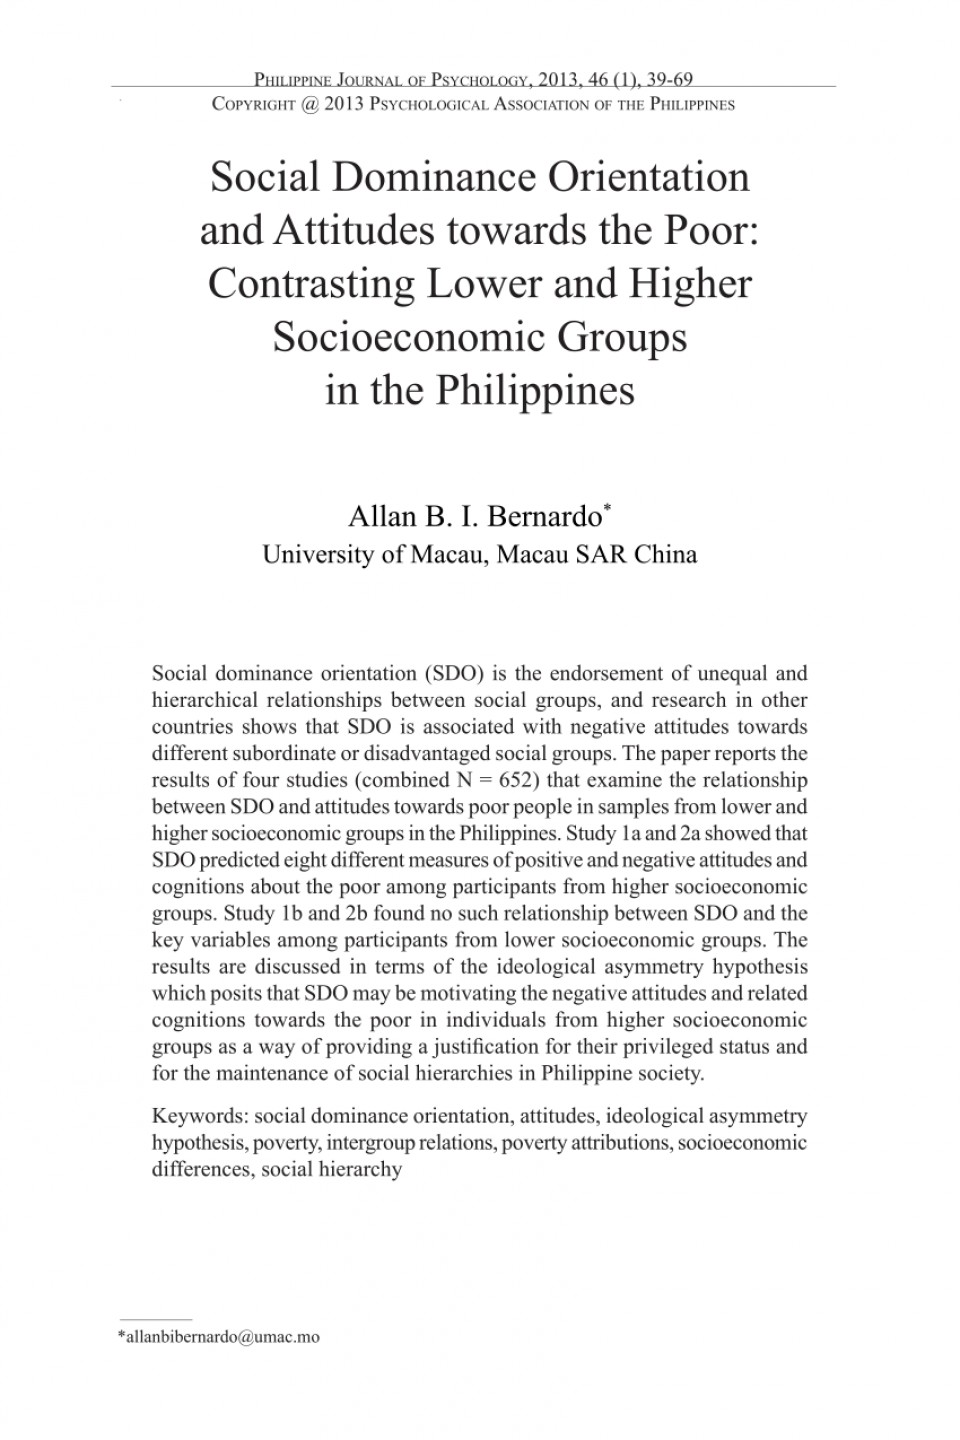 004 Poverty In The Philippines Research Paper Pdf Impressive 960